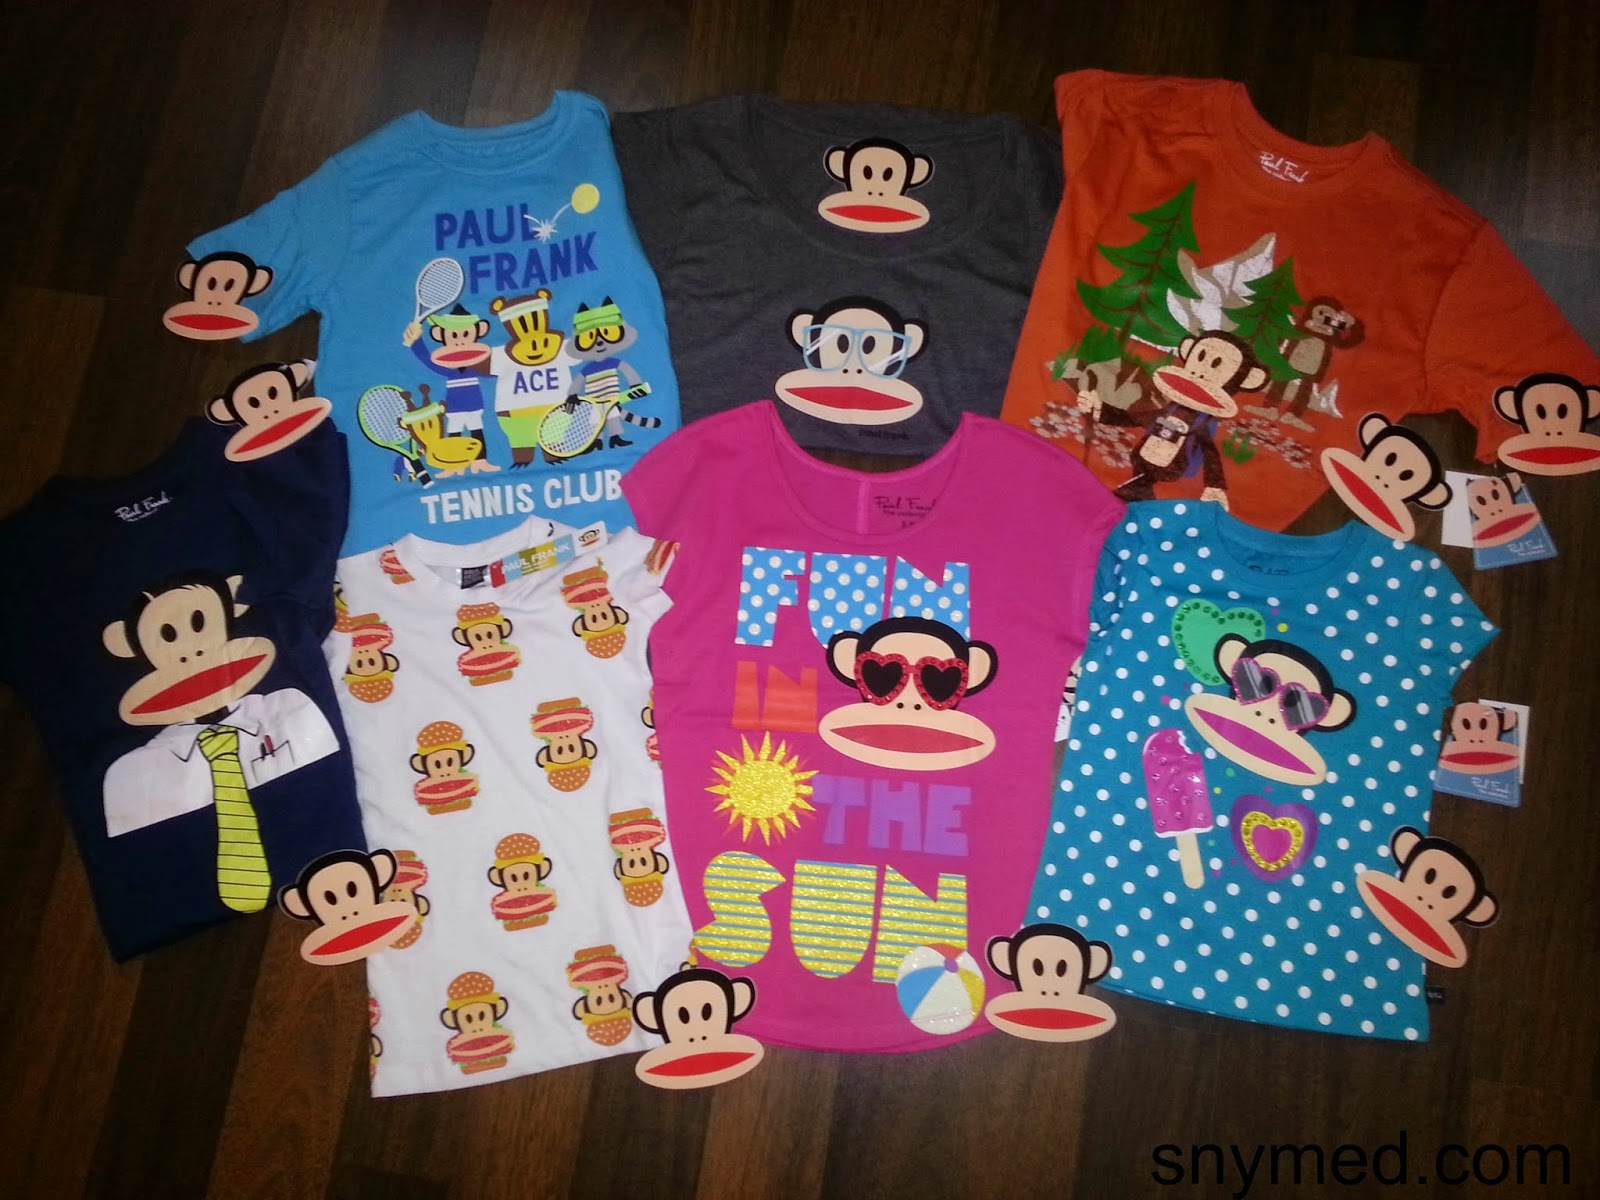 Paul Frank Baby Clothes